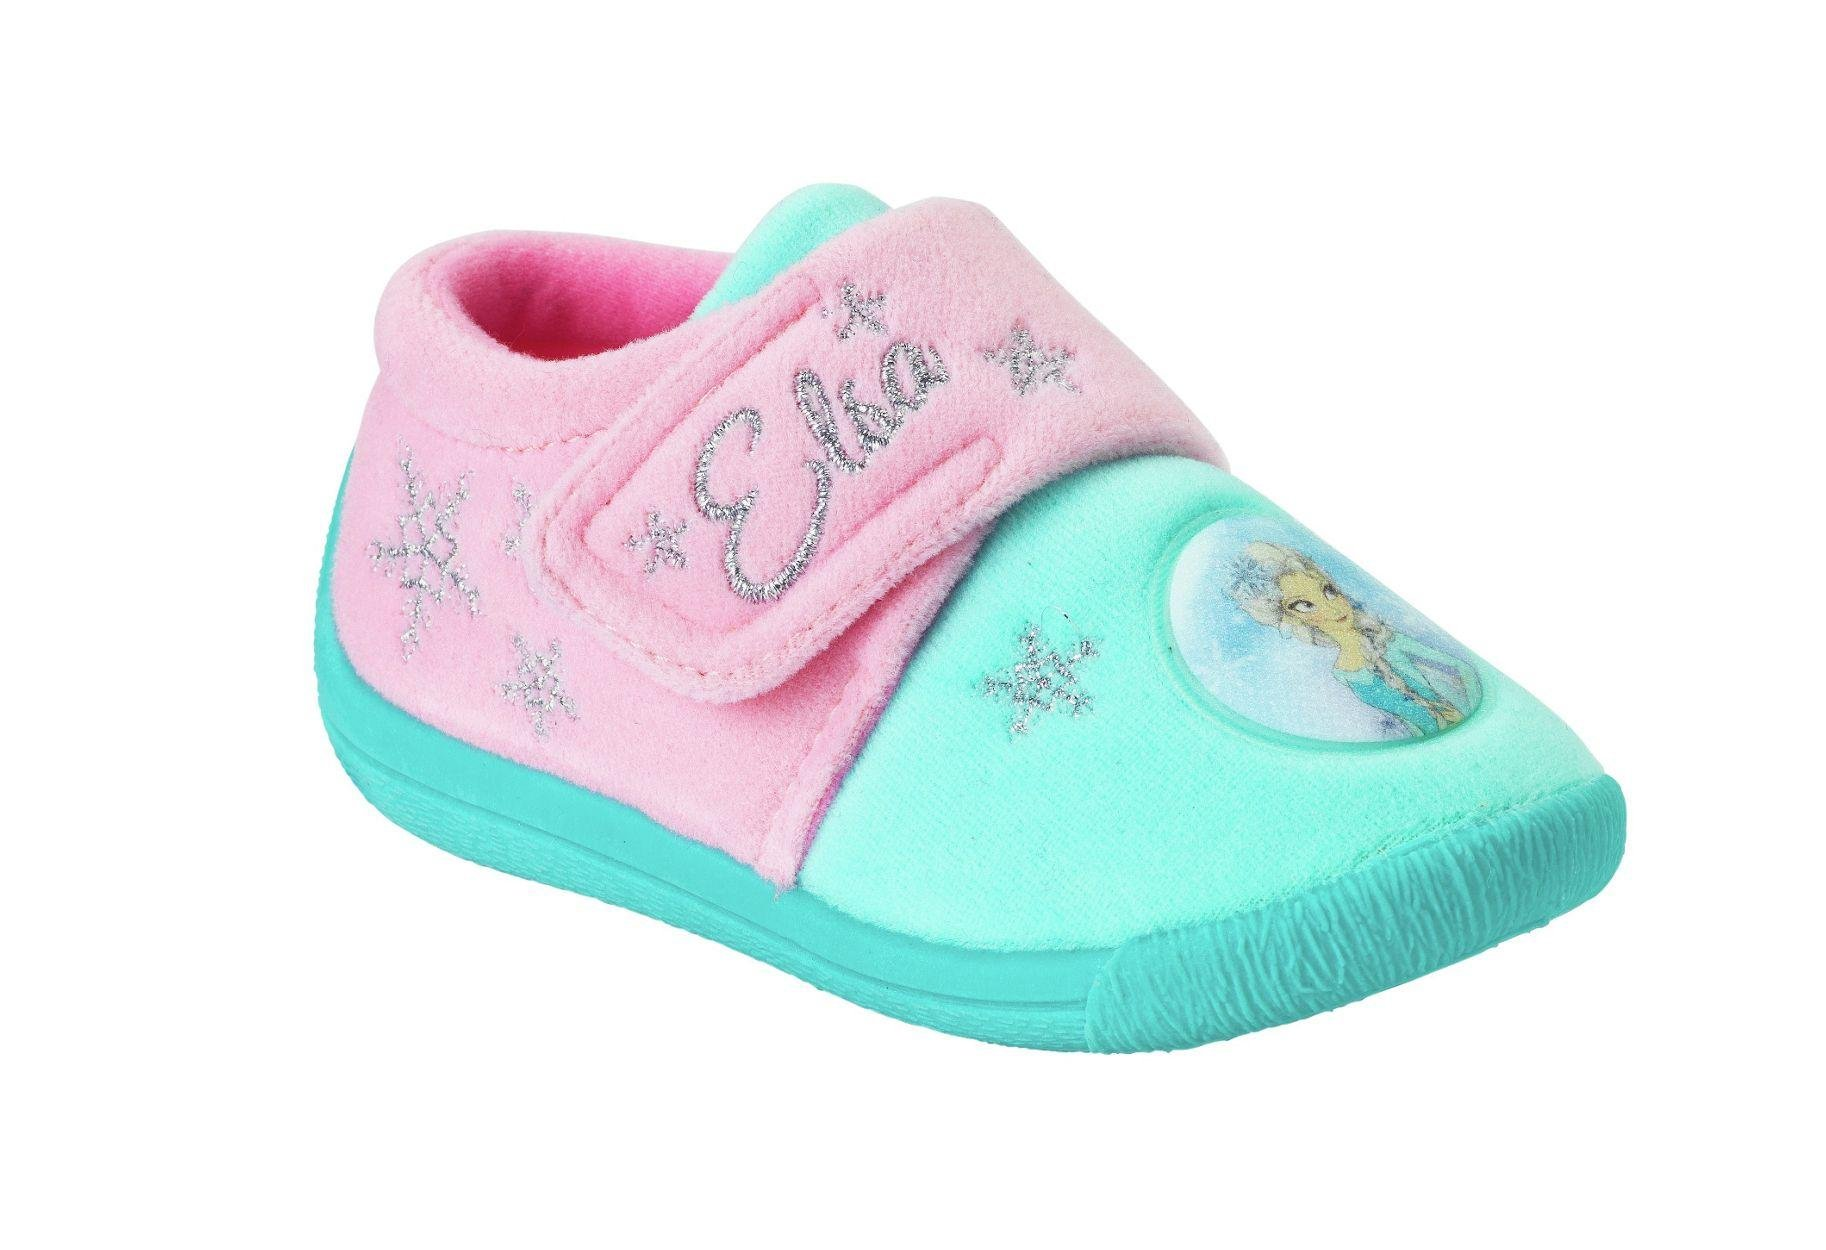 Image of Disney - Frozen - Toddle Slippers - Size 8